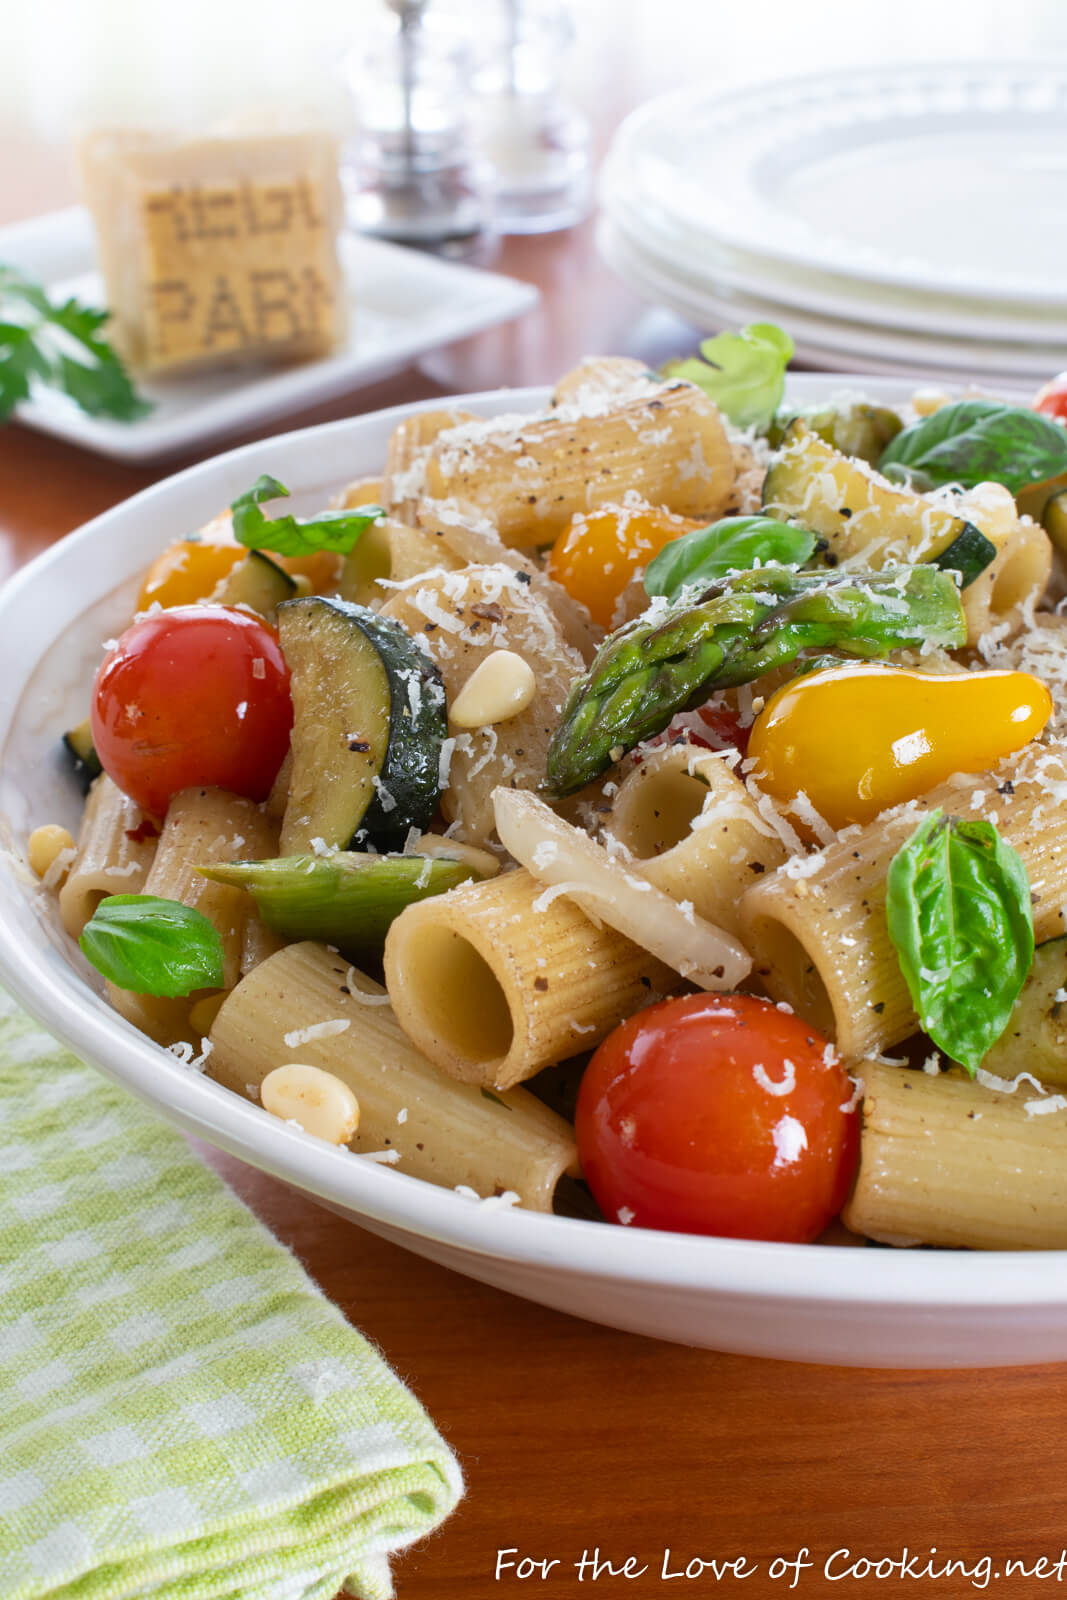 Rigatoni with Zucchini, Tomatoes, Basil and Pine Nuts